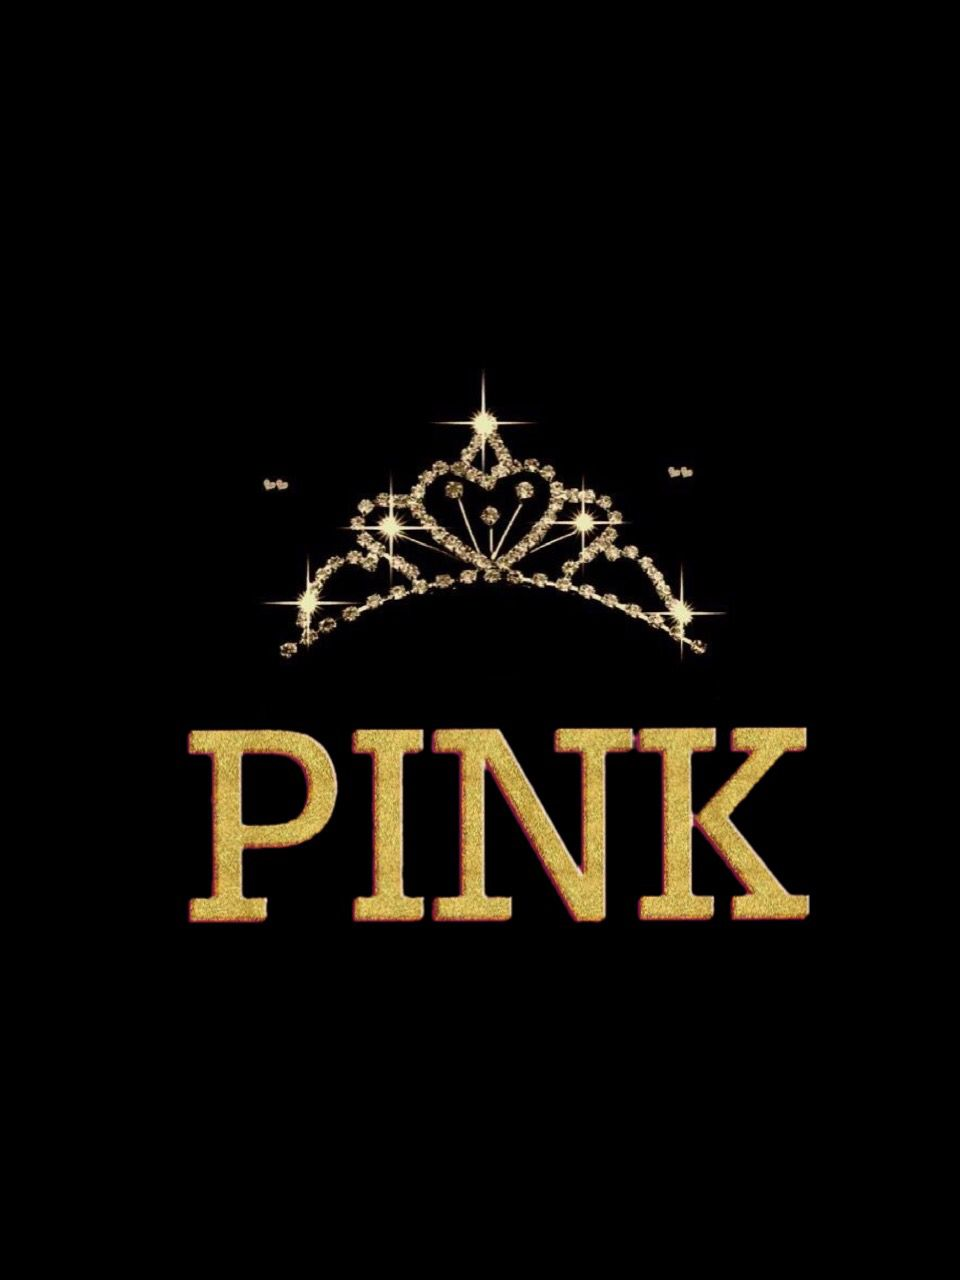 Pin By Chiitan On ヴィクトリアシークレット Pink Nation Wallpaper Victoria Secret Wallpaper Pretty Wallpapers